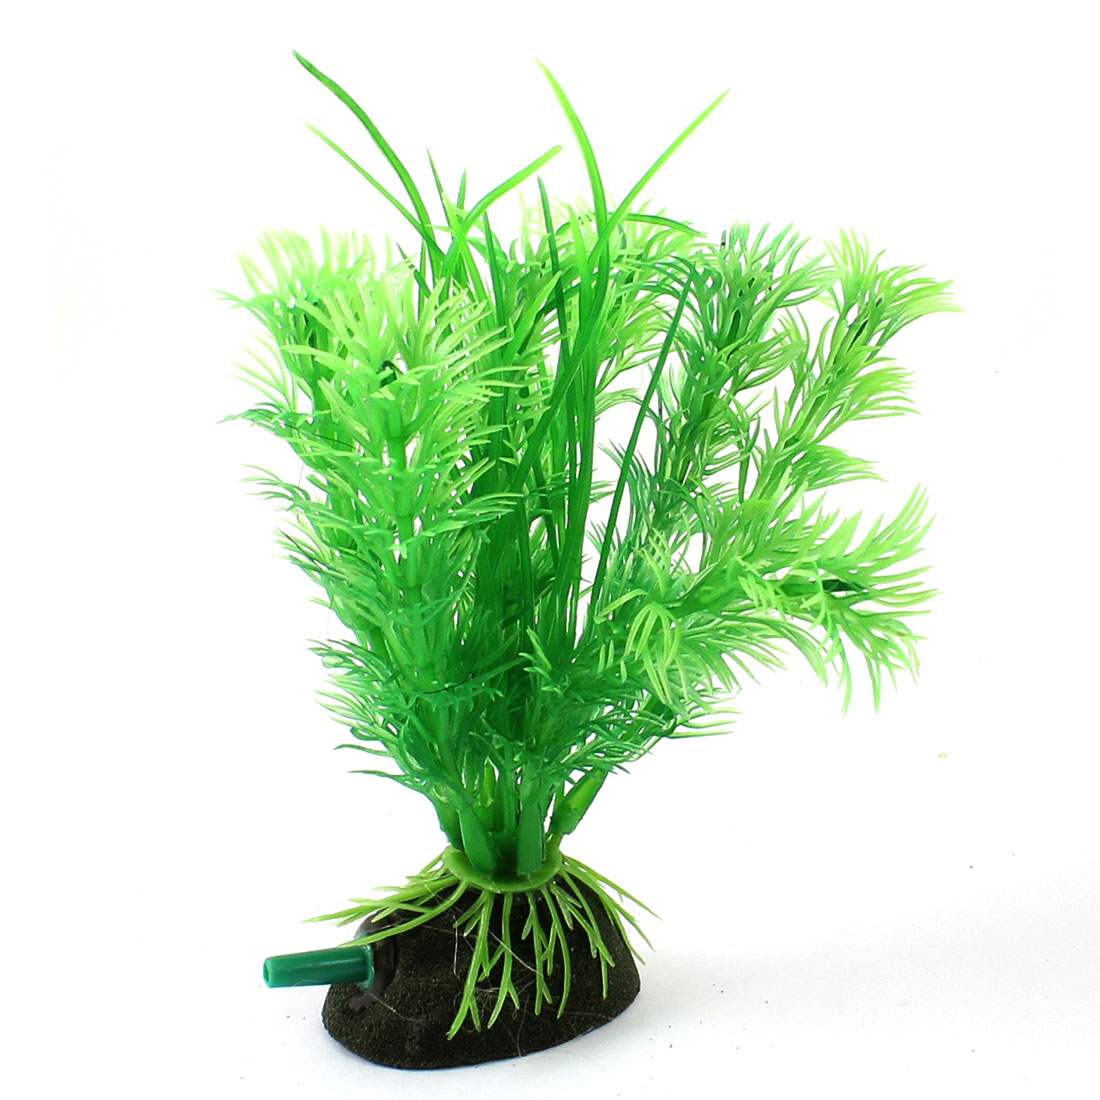 "Aquarium Fish Tank Ornament Landscaping Artificial Emulational Underwater Air Stone Grass Decor Green 5"" Height"